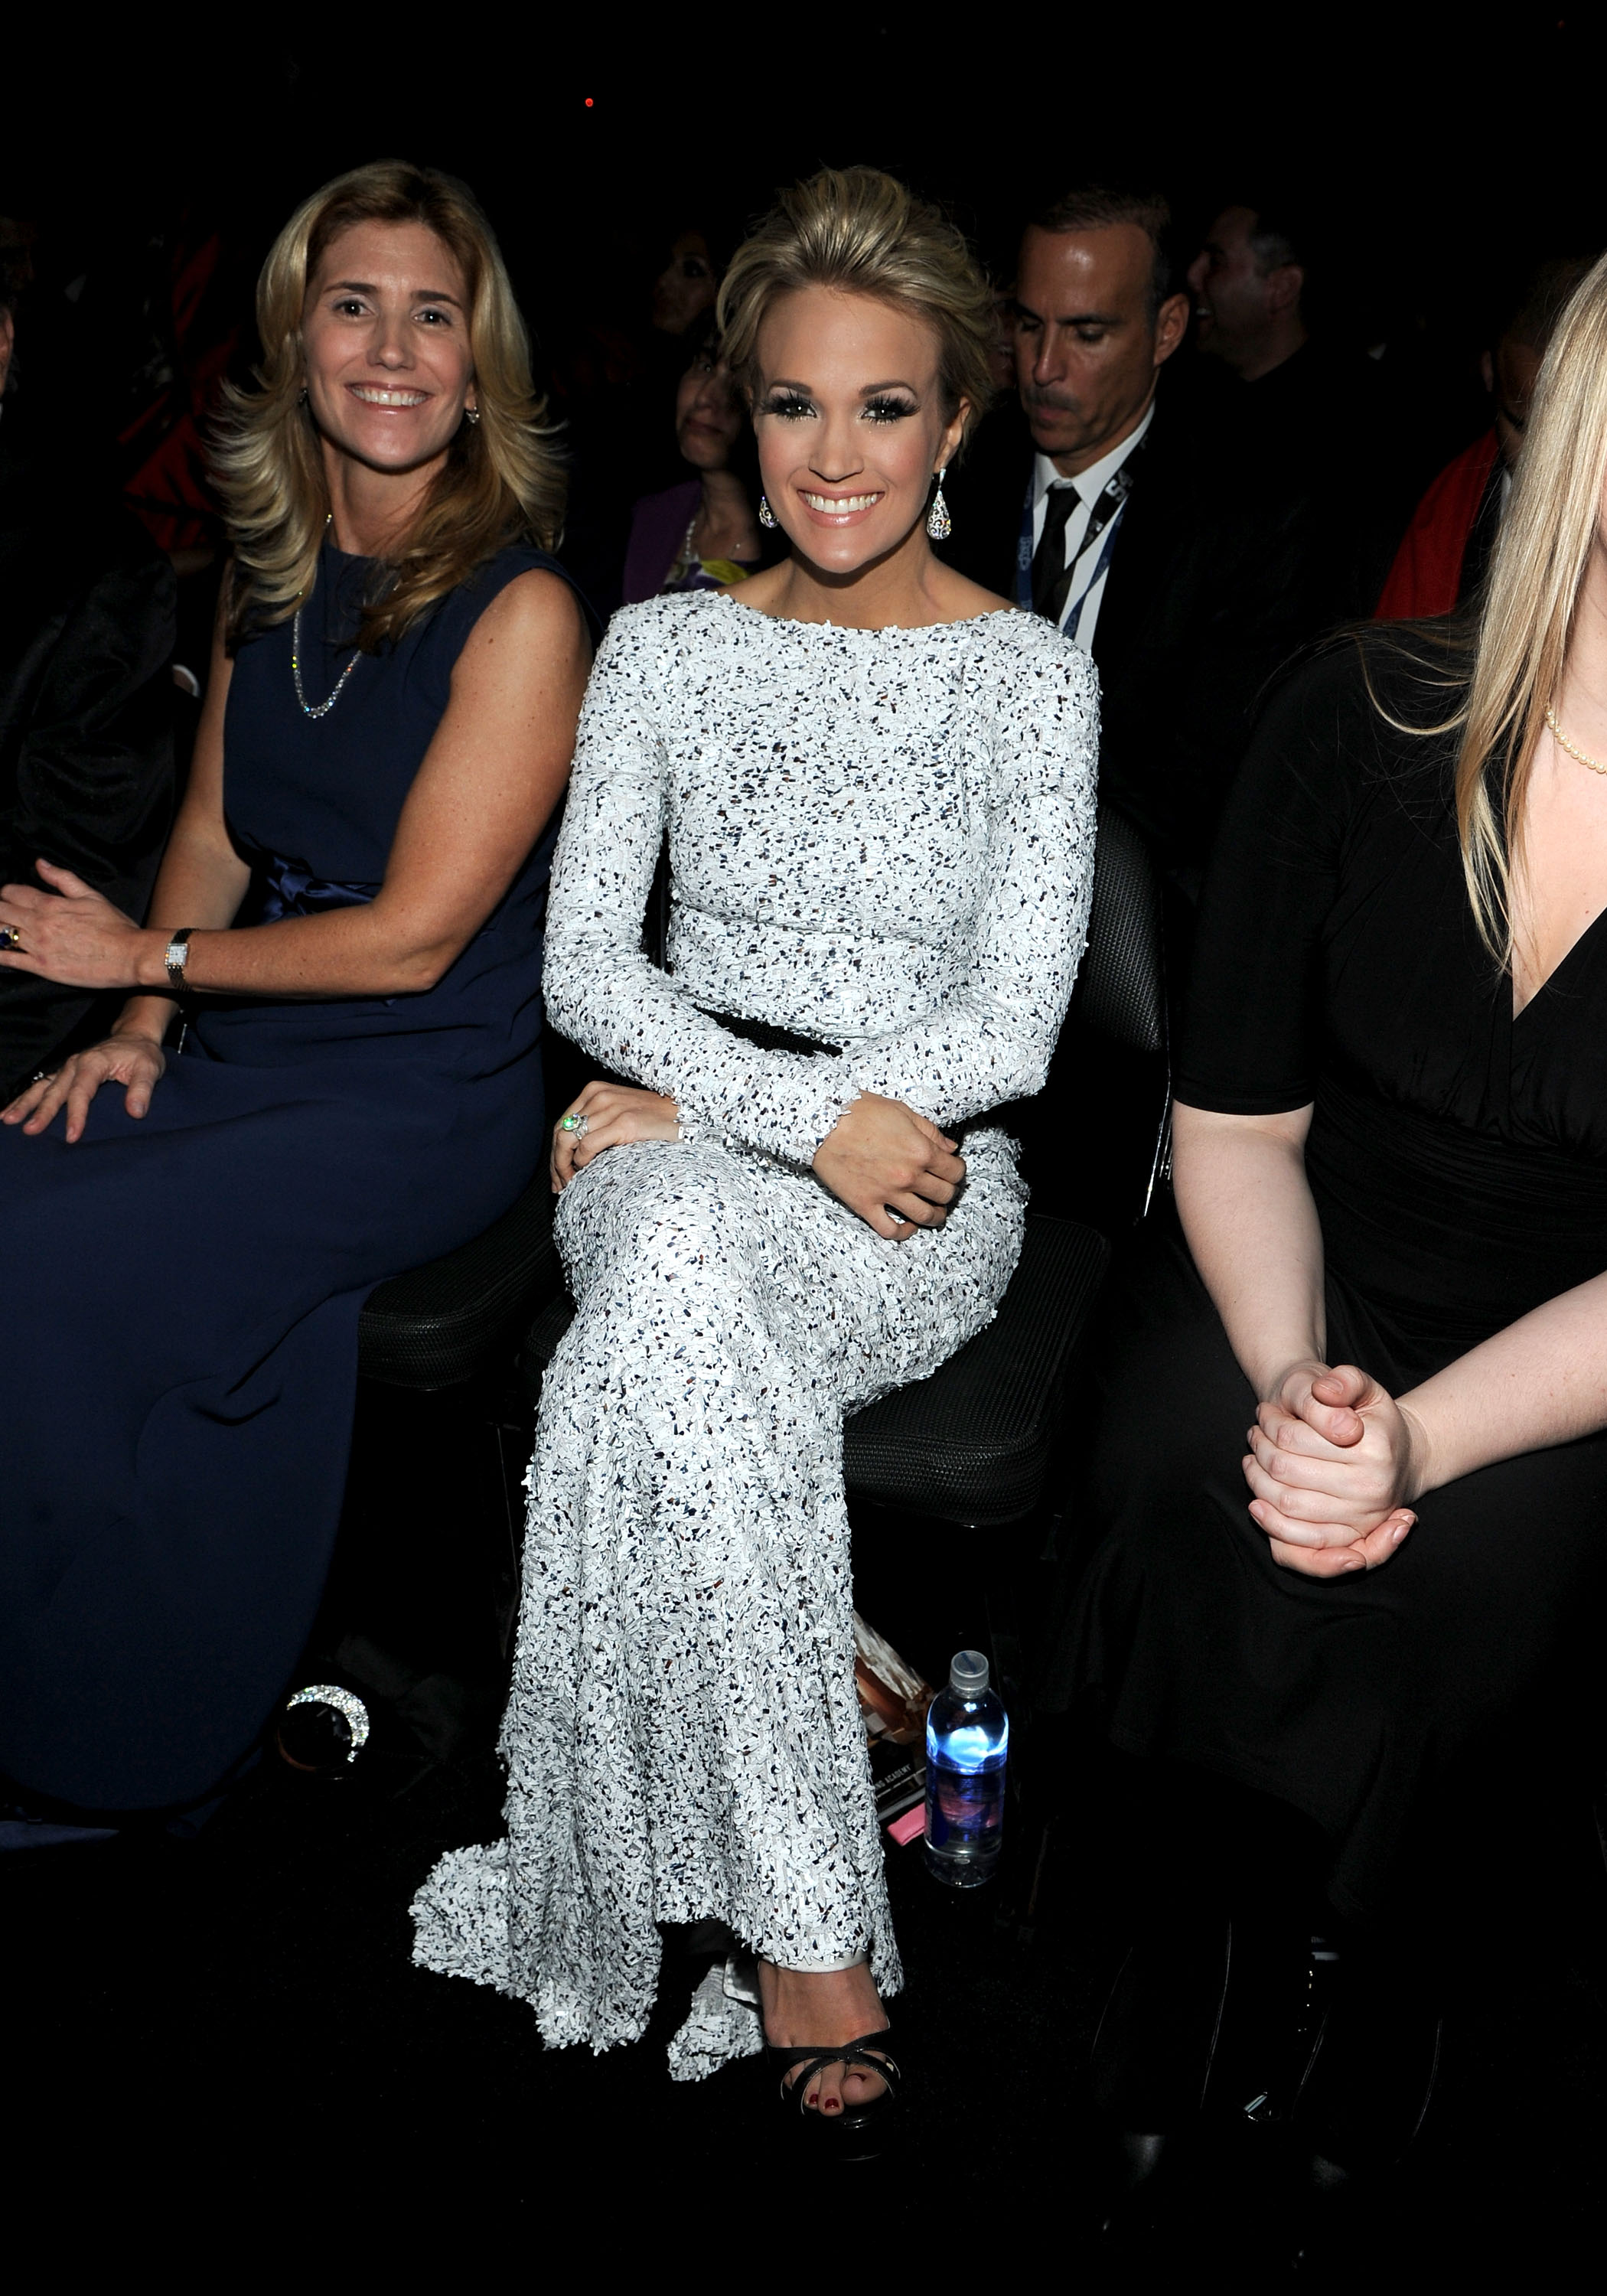 Carrie Underwood was all smiles in her front-row seat.